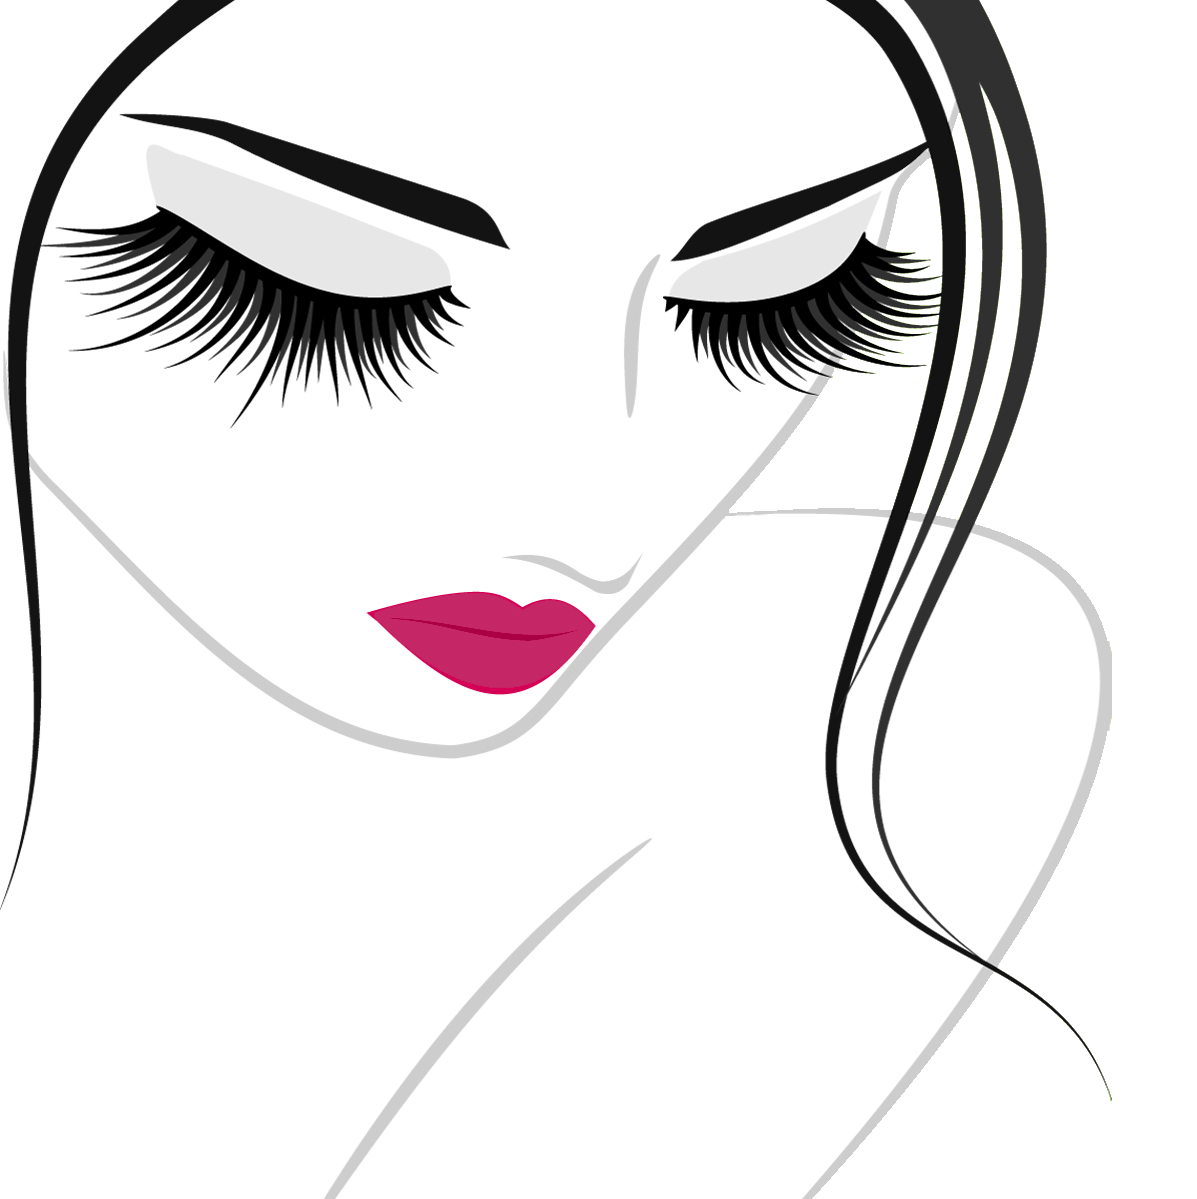 Eyelash clipart beautiful eye. Grow your lashes naturally